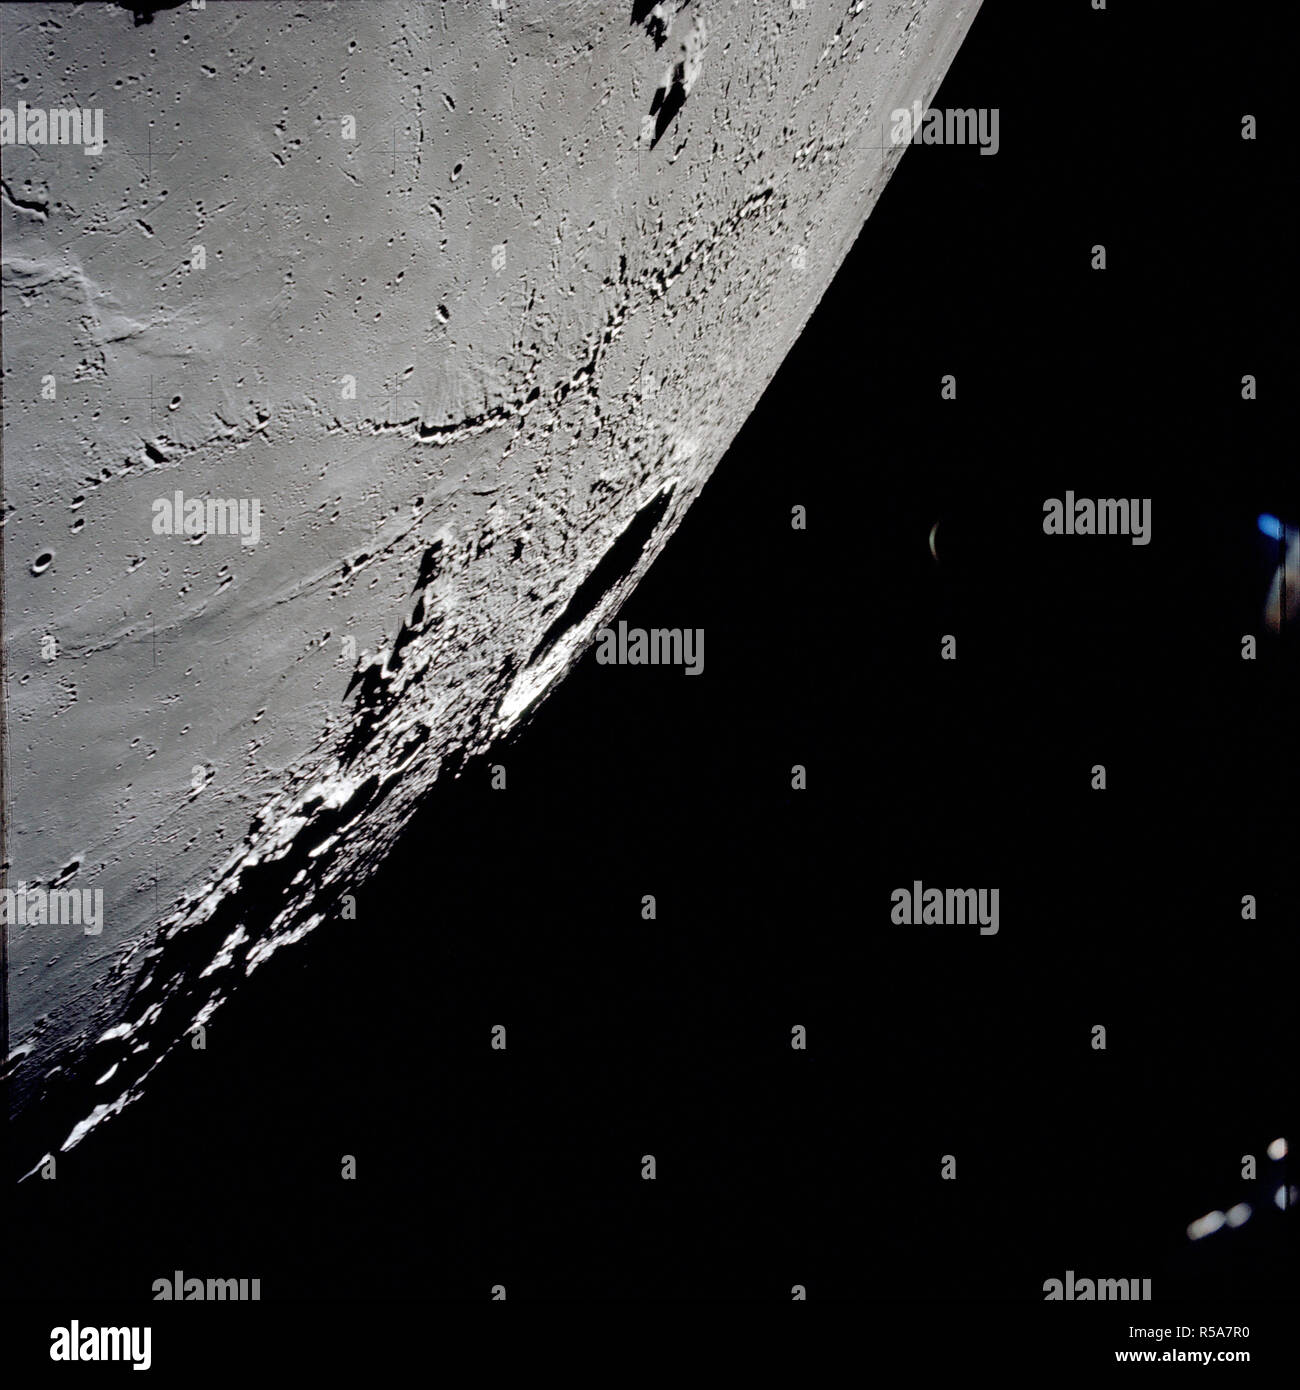 (7-19 Dec. 1972) --- An oblique view of the large crater Copernicus on the lunar nearside, as photographed from the Apollo 17 spacecraft in lunar orbit. This view is looking generally southwest toward the crater on the horizon. - Stock Image